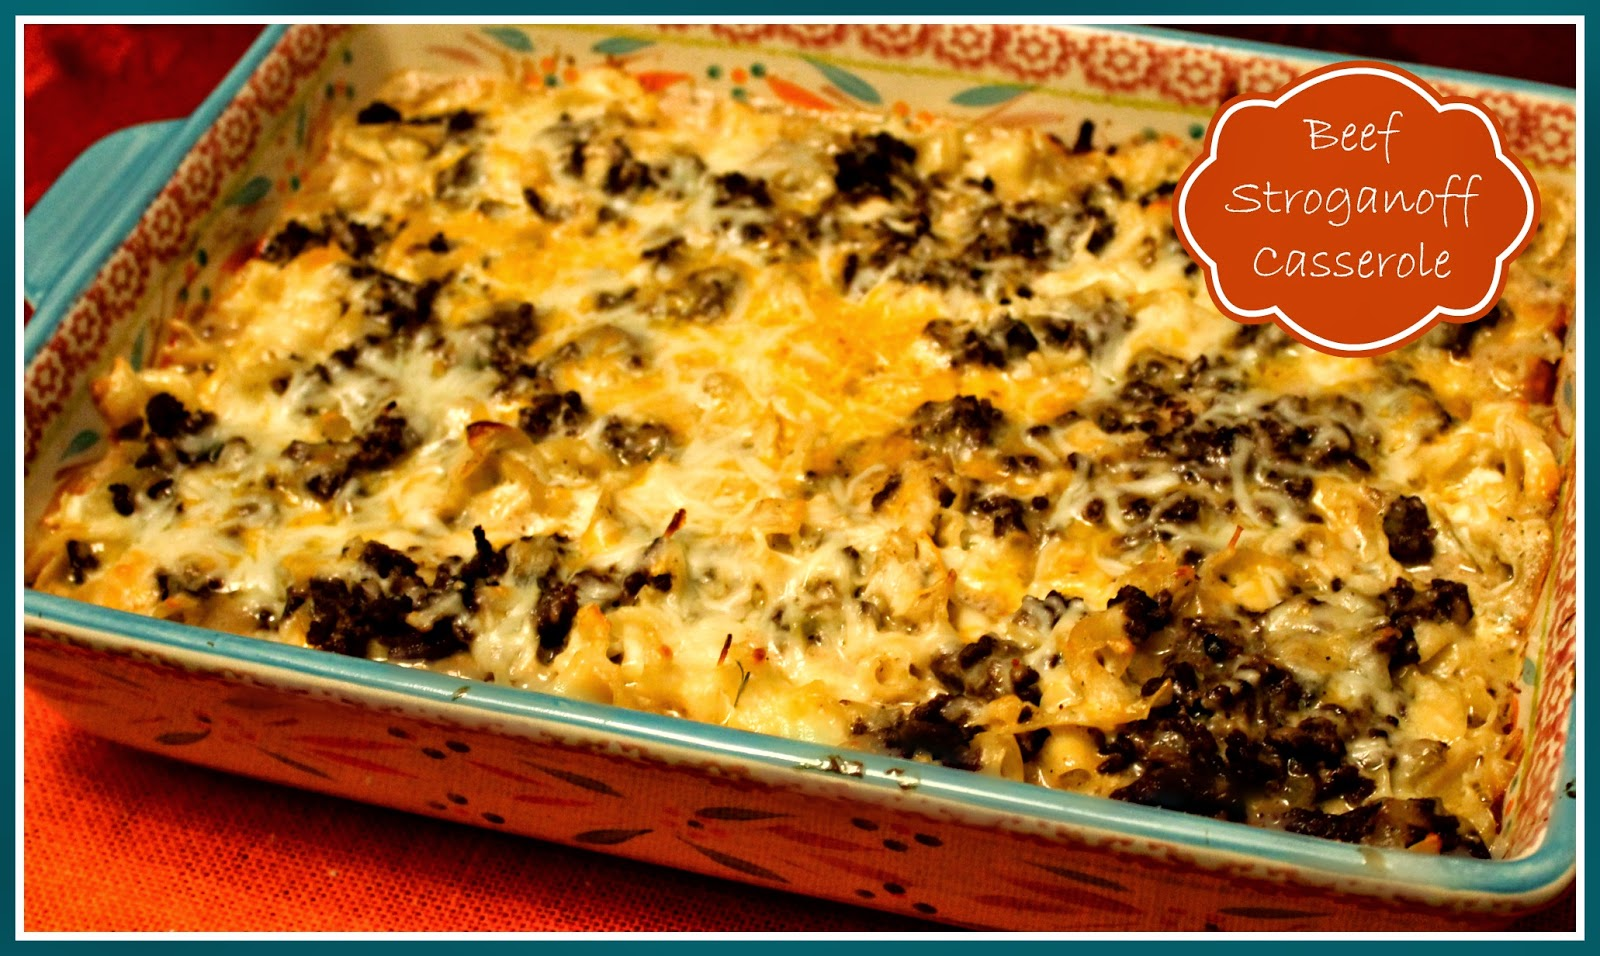 beef stroganoff casserole recipe yummly easy ground beef stroganoff ...